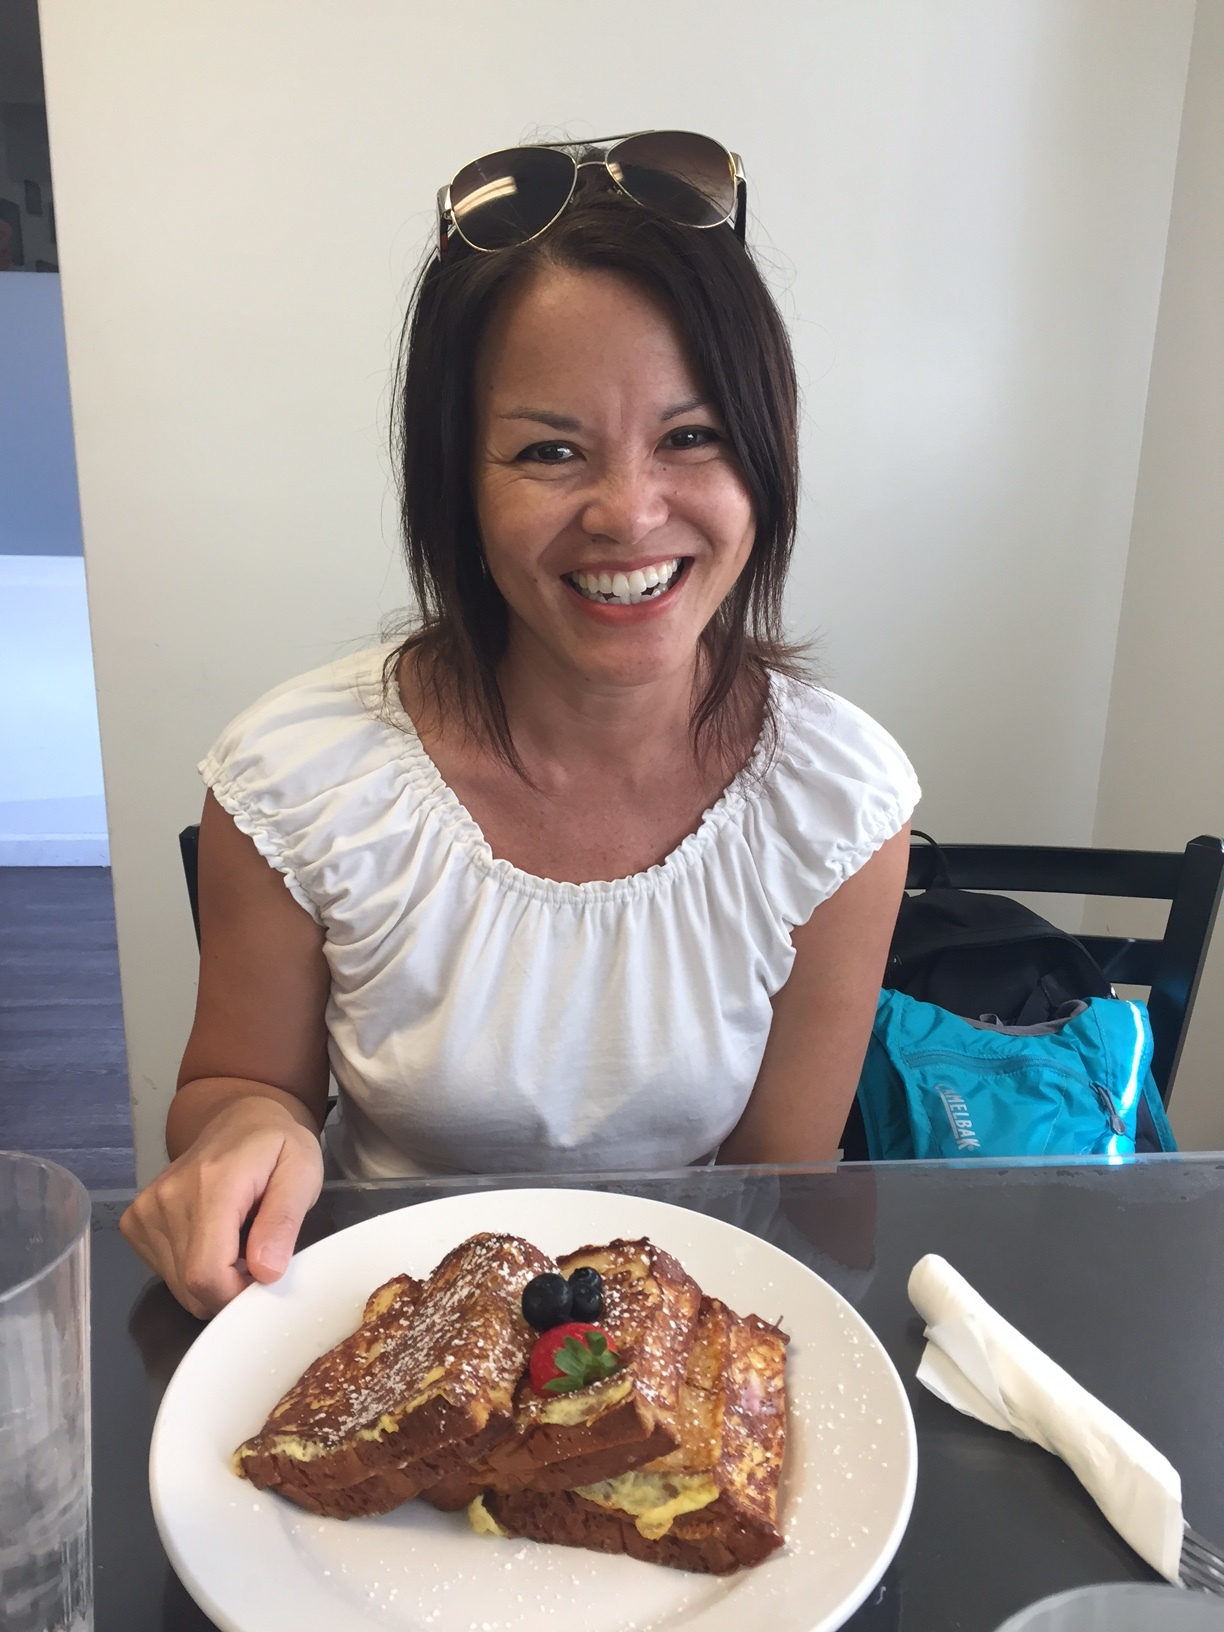 Karin and her Blueberry Cream Cheese Stuffed French Toast at Sweet E's.